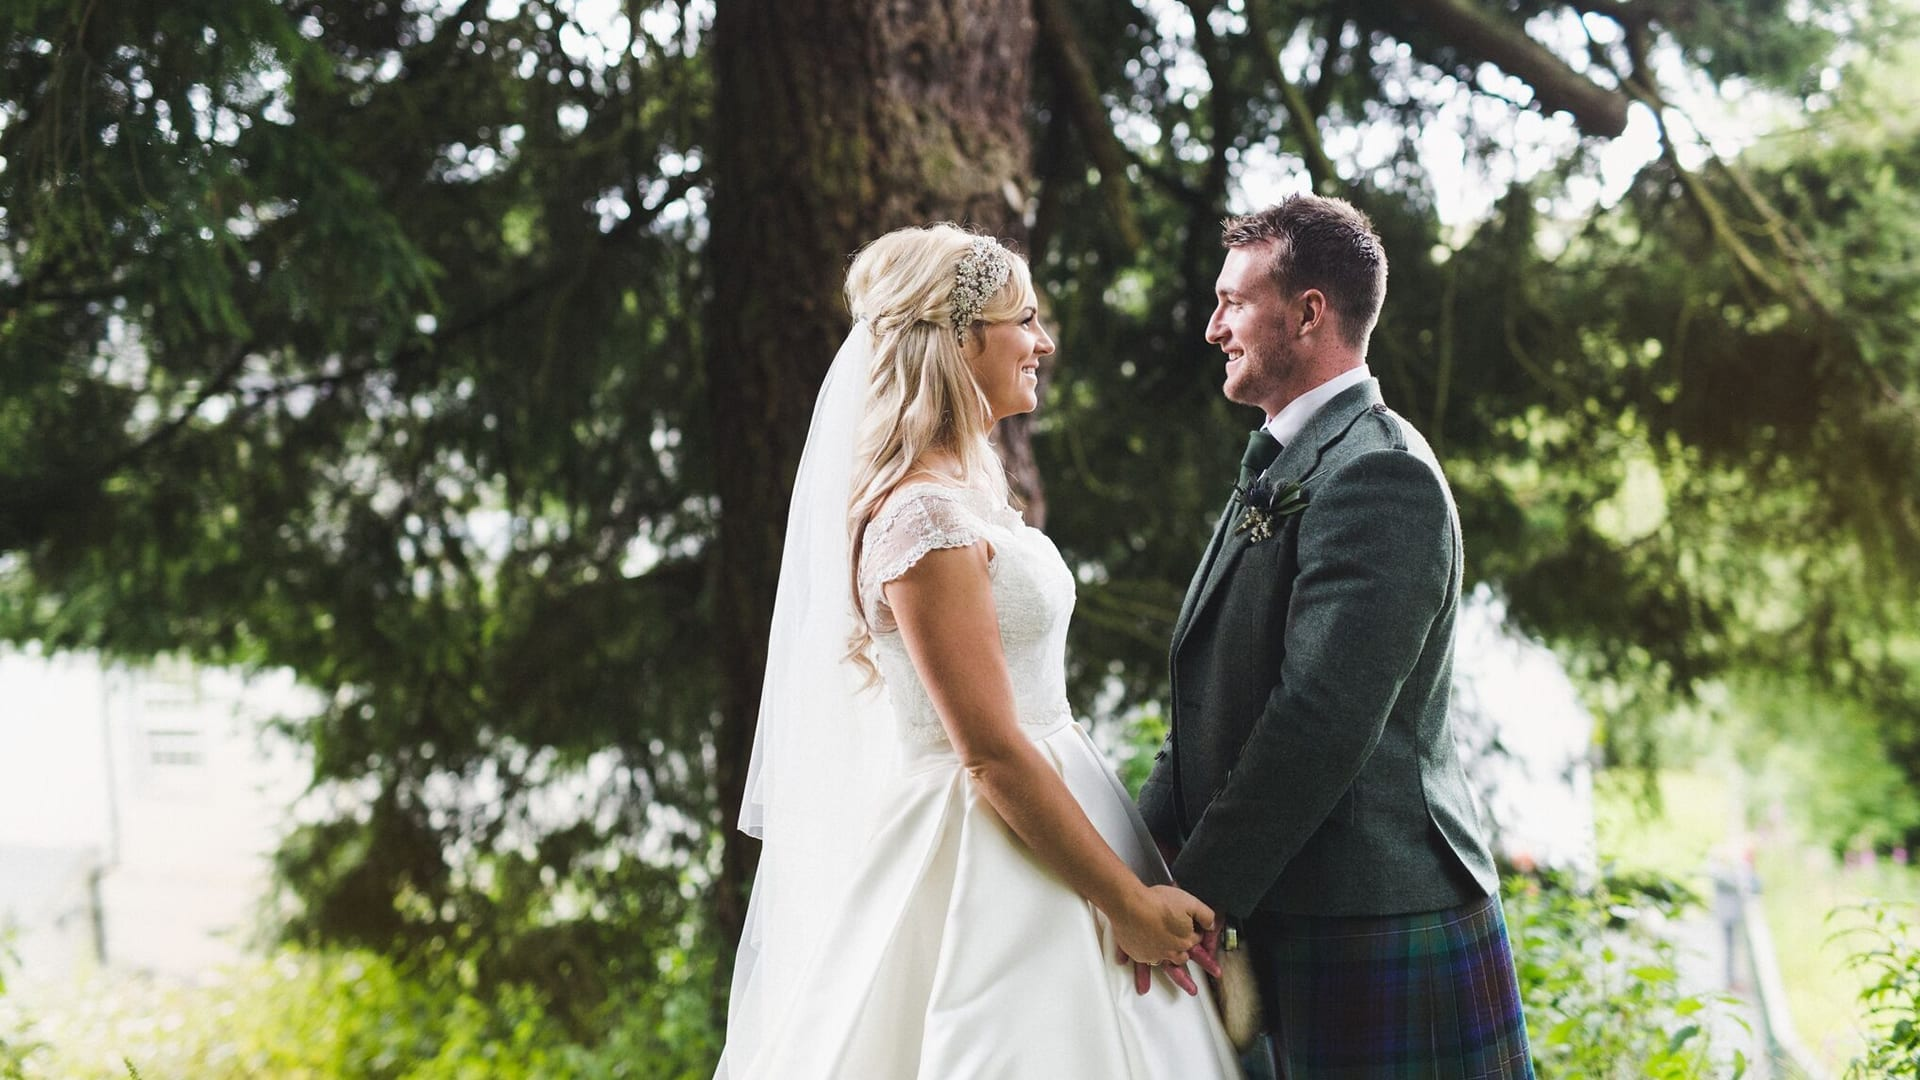 Bride and groom in outdoor photo at Barony Castle